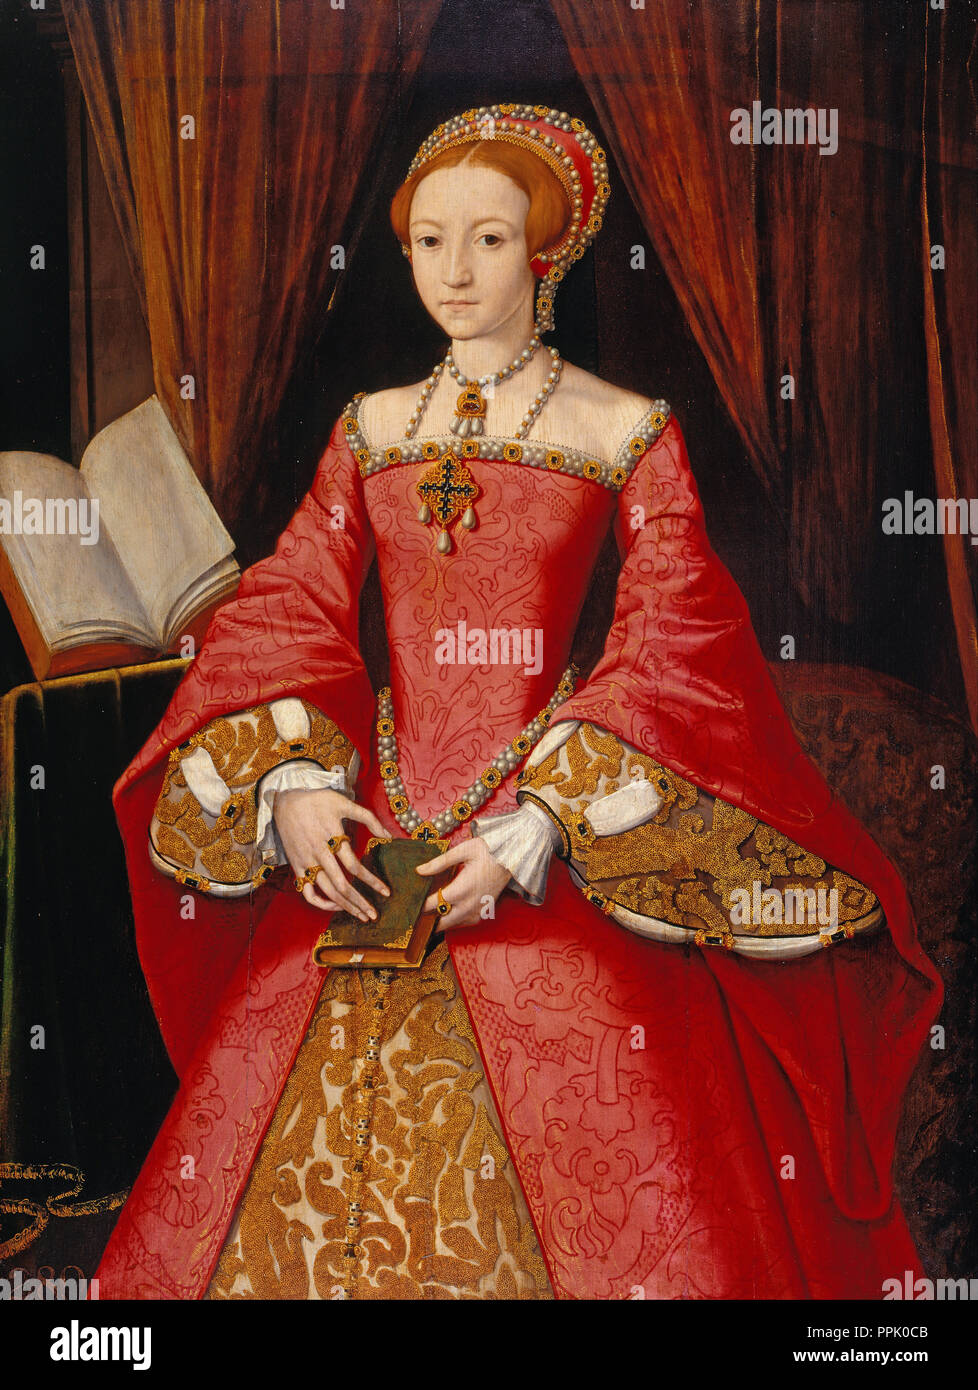 Elizabeth I when a Princess (1533-1603). Date/Period: 1546 - 1547. Painting. Height: 108.5 cm (42.7 in); Width: 81.8 cm (32.2 in). Author: Attributed to William Scrots. SCROTS, WILLIAM. - Stock Image